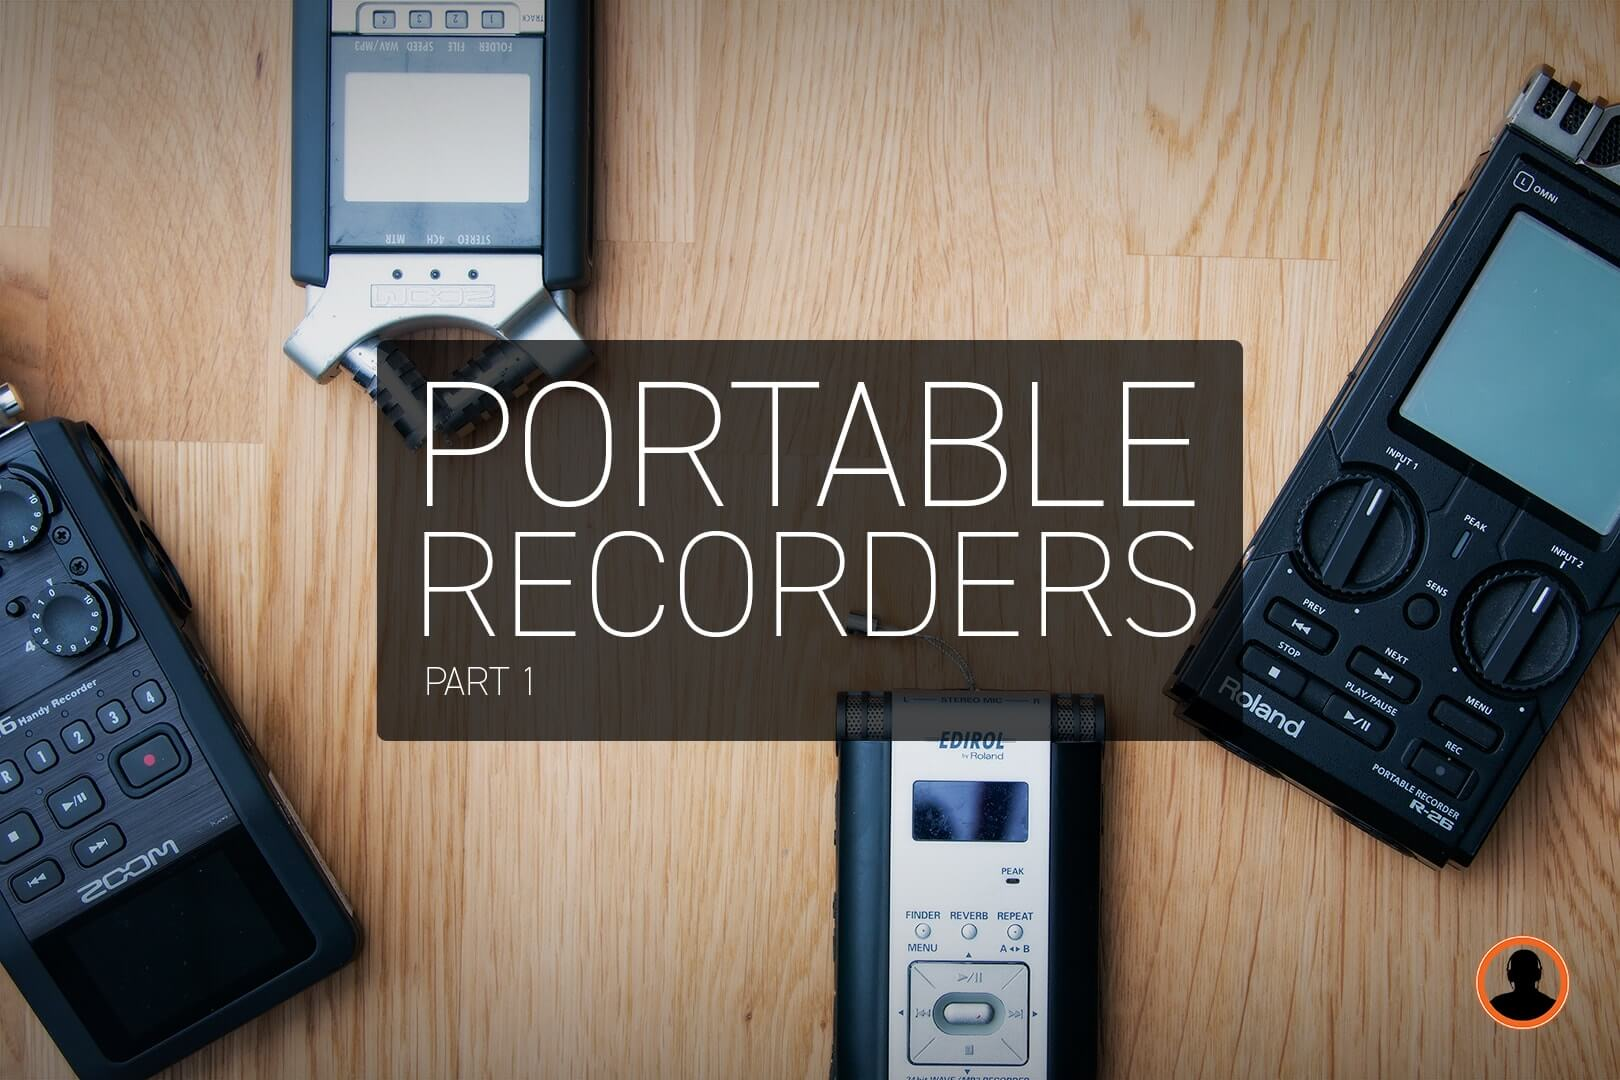 Portable Recorders (Part 1)